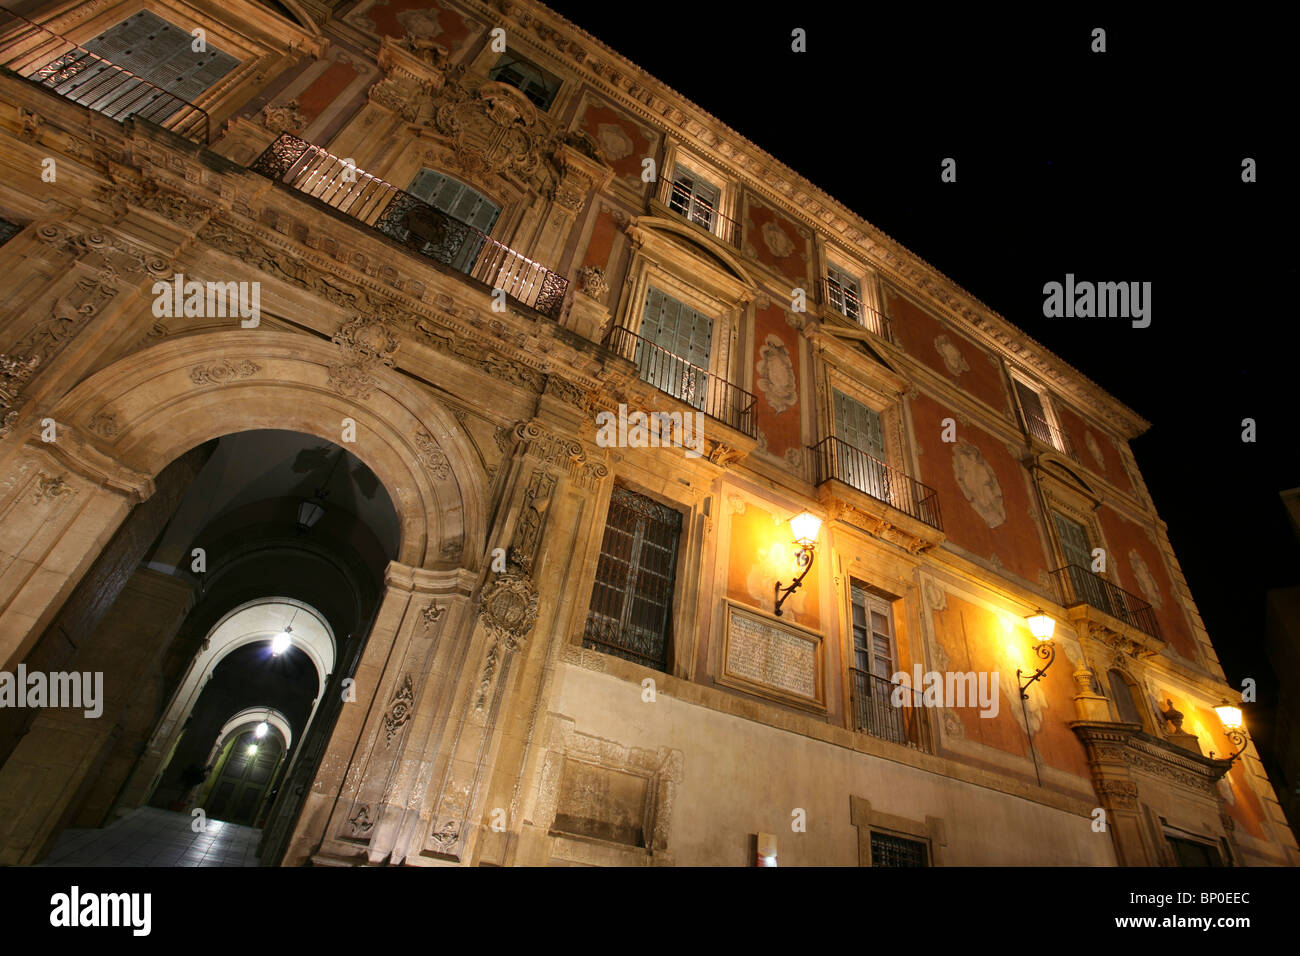 Episcopal Palace, Plaza del Cardenal Belluga at night, Murcia, Spain - Stock Image